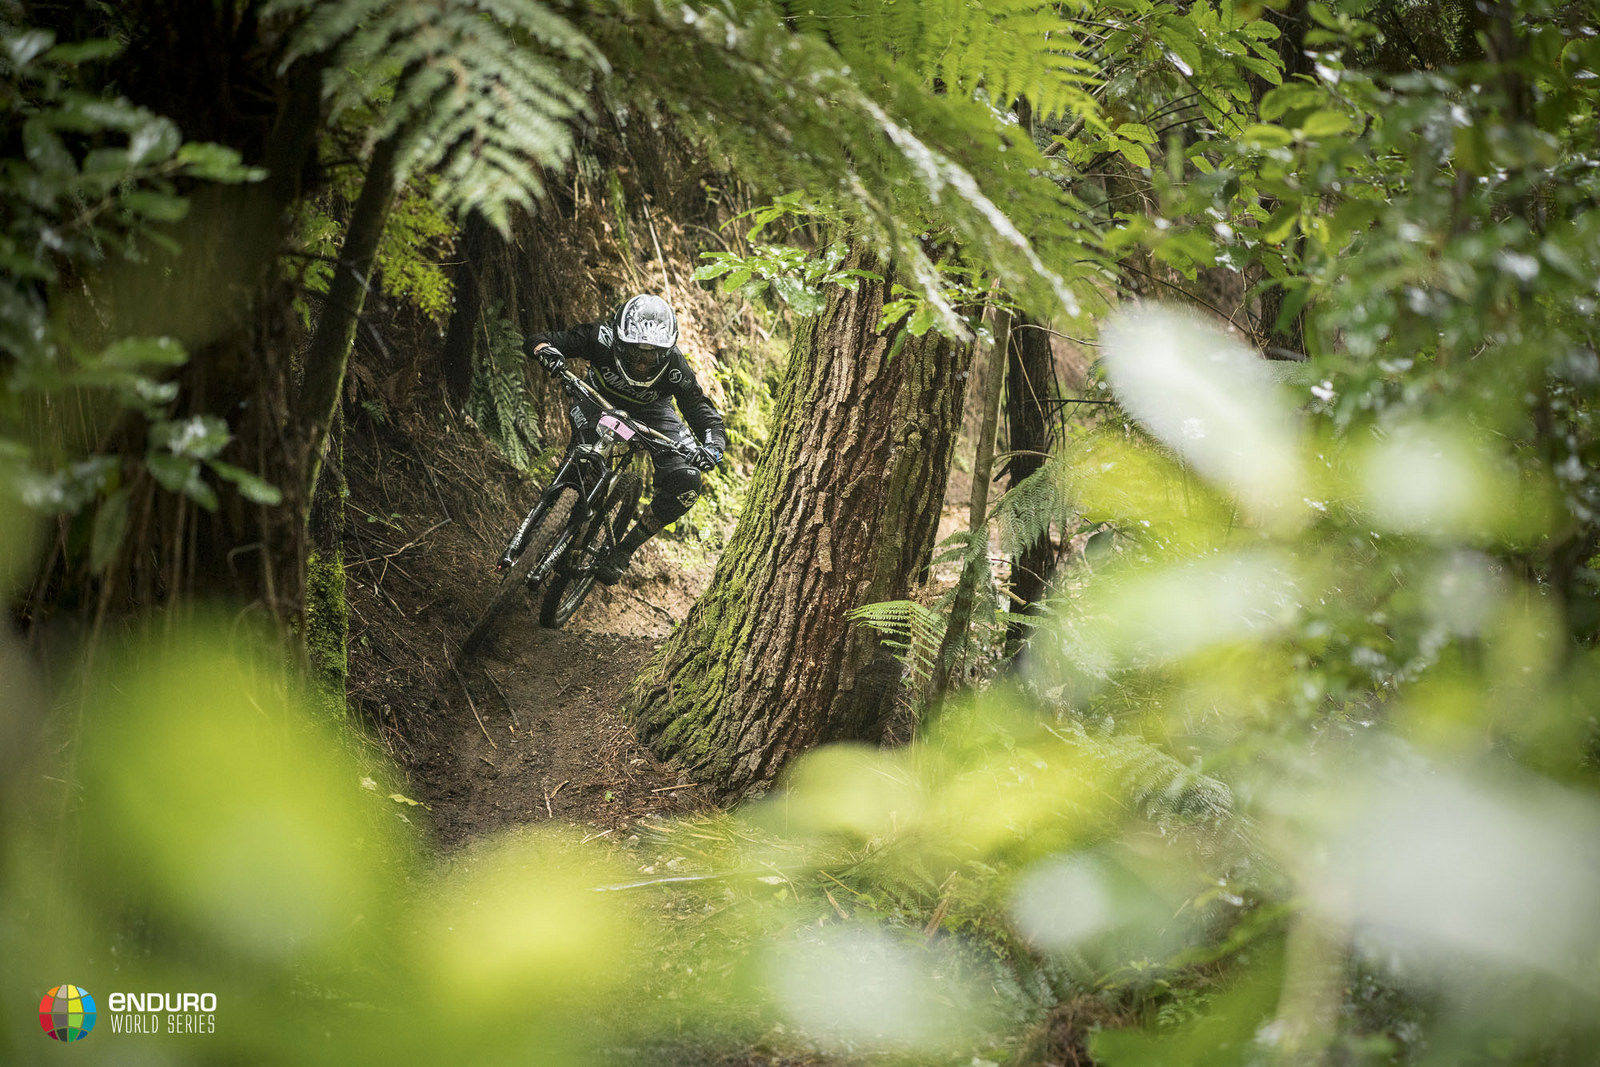 Best mountain bike 2019: all you need to know - MBR